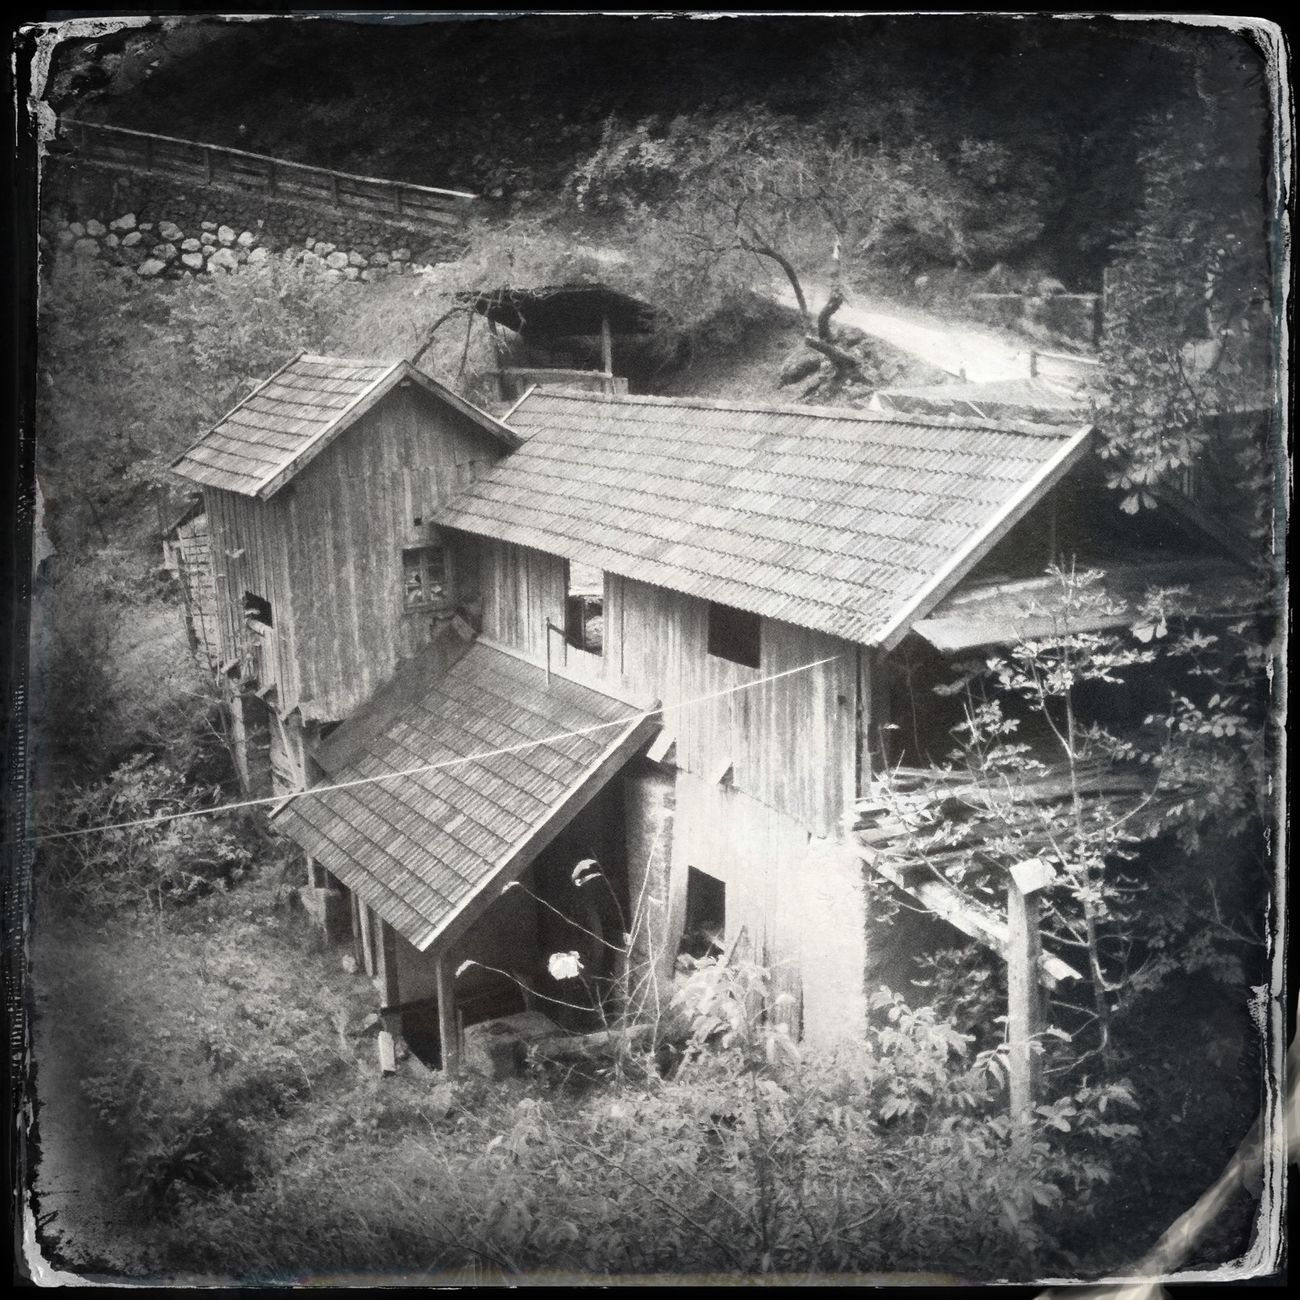 An old mill Hipstamatic Blackandwhite The_guido